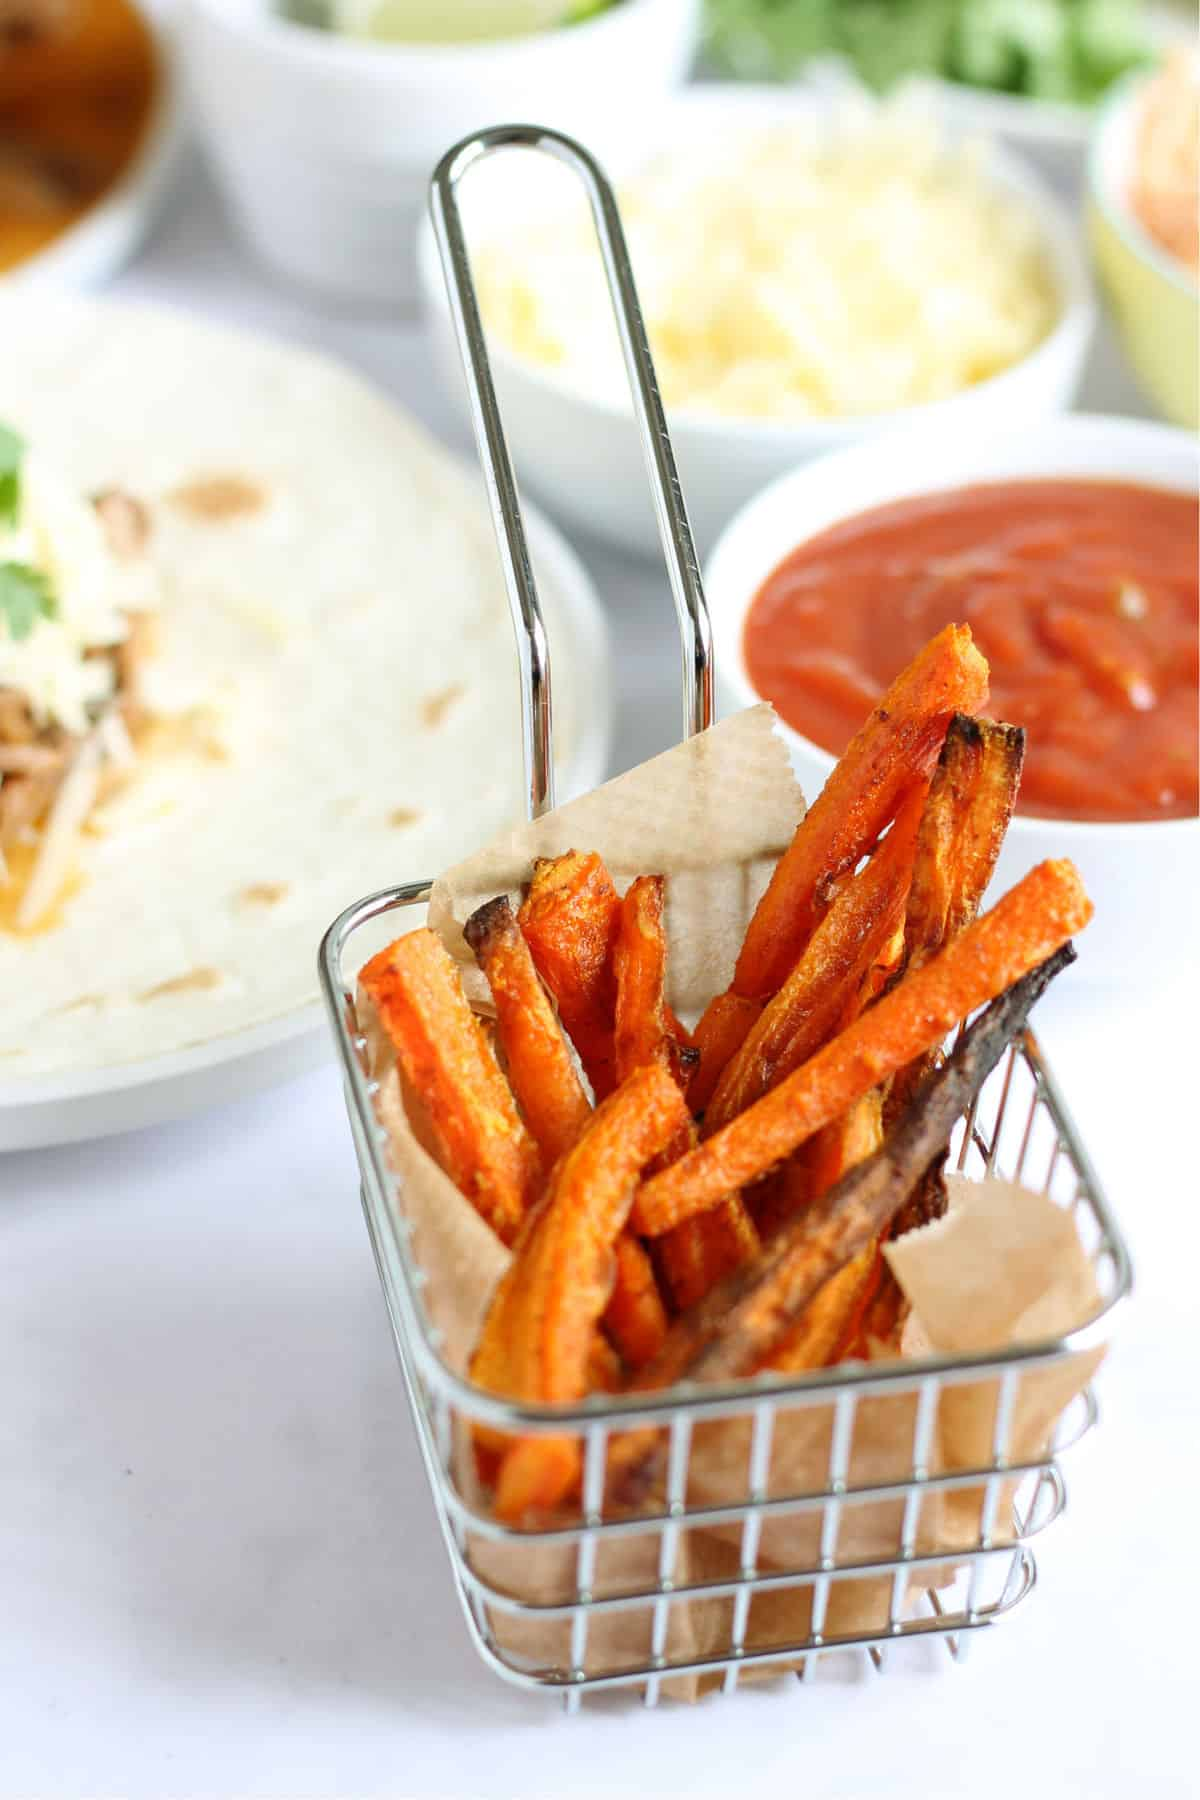 A portion of baked carrot fries with homemade ketchup